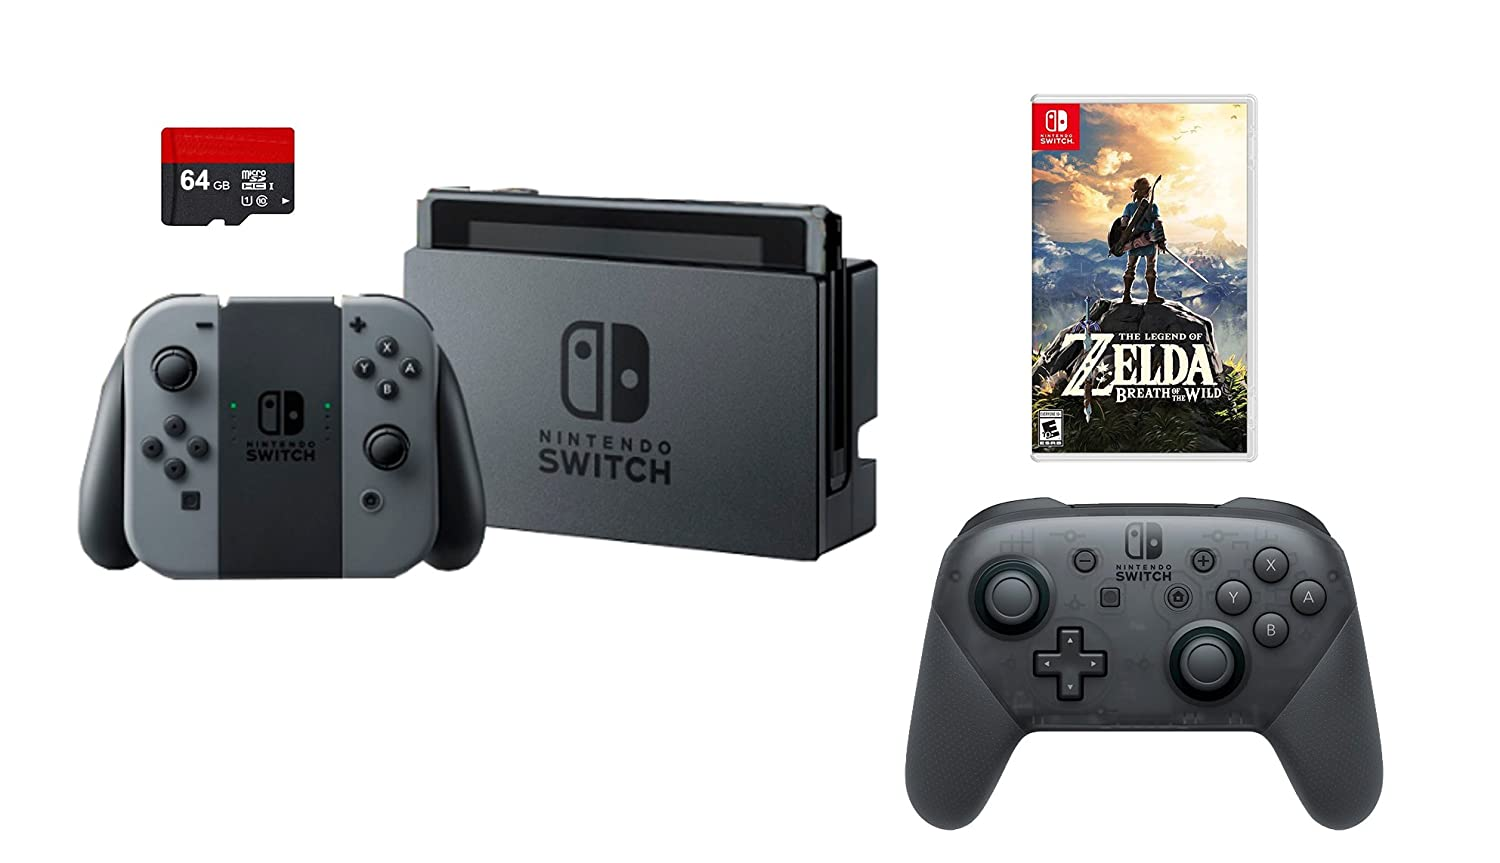 Nintendo Swtich 4 items Bundle:Nintendo Switch 32GB Console Gray Joy-con,64GB Micro SD Memory Card and an Extra Nintendo Switch Pro Wireless Controller,The Legend of Zelda